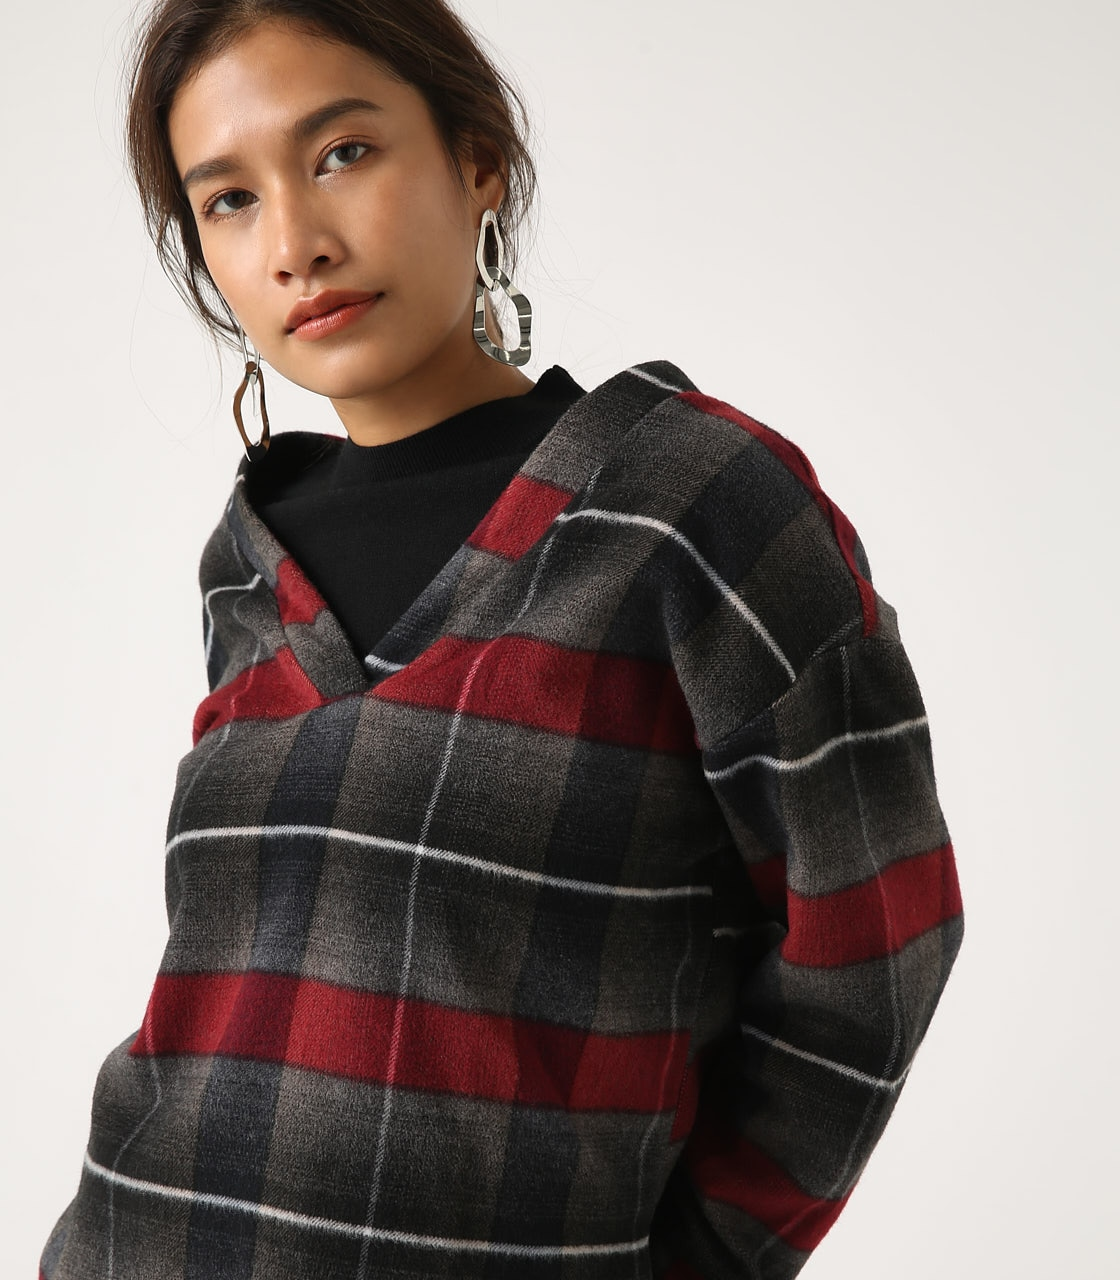 【AZUL BY MOUSSY】シャギーチェック2WAYプルオーバー 詳細画像 柄RED 1